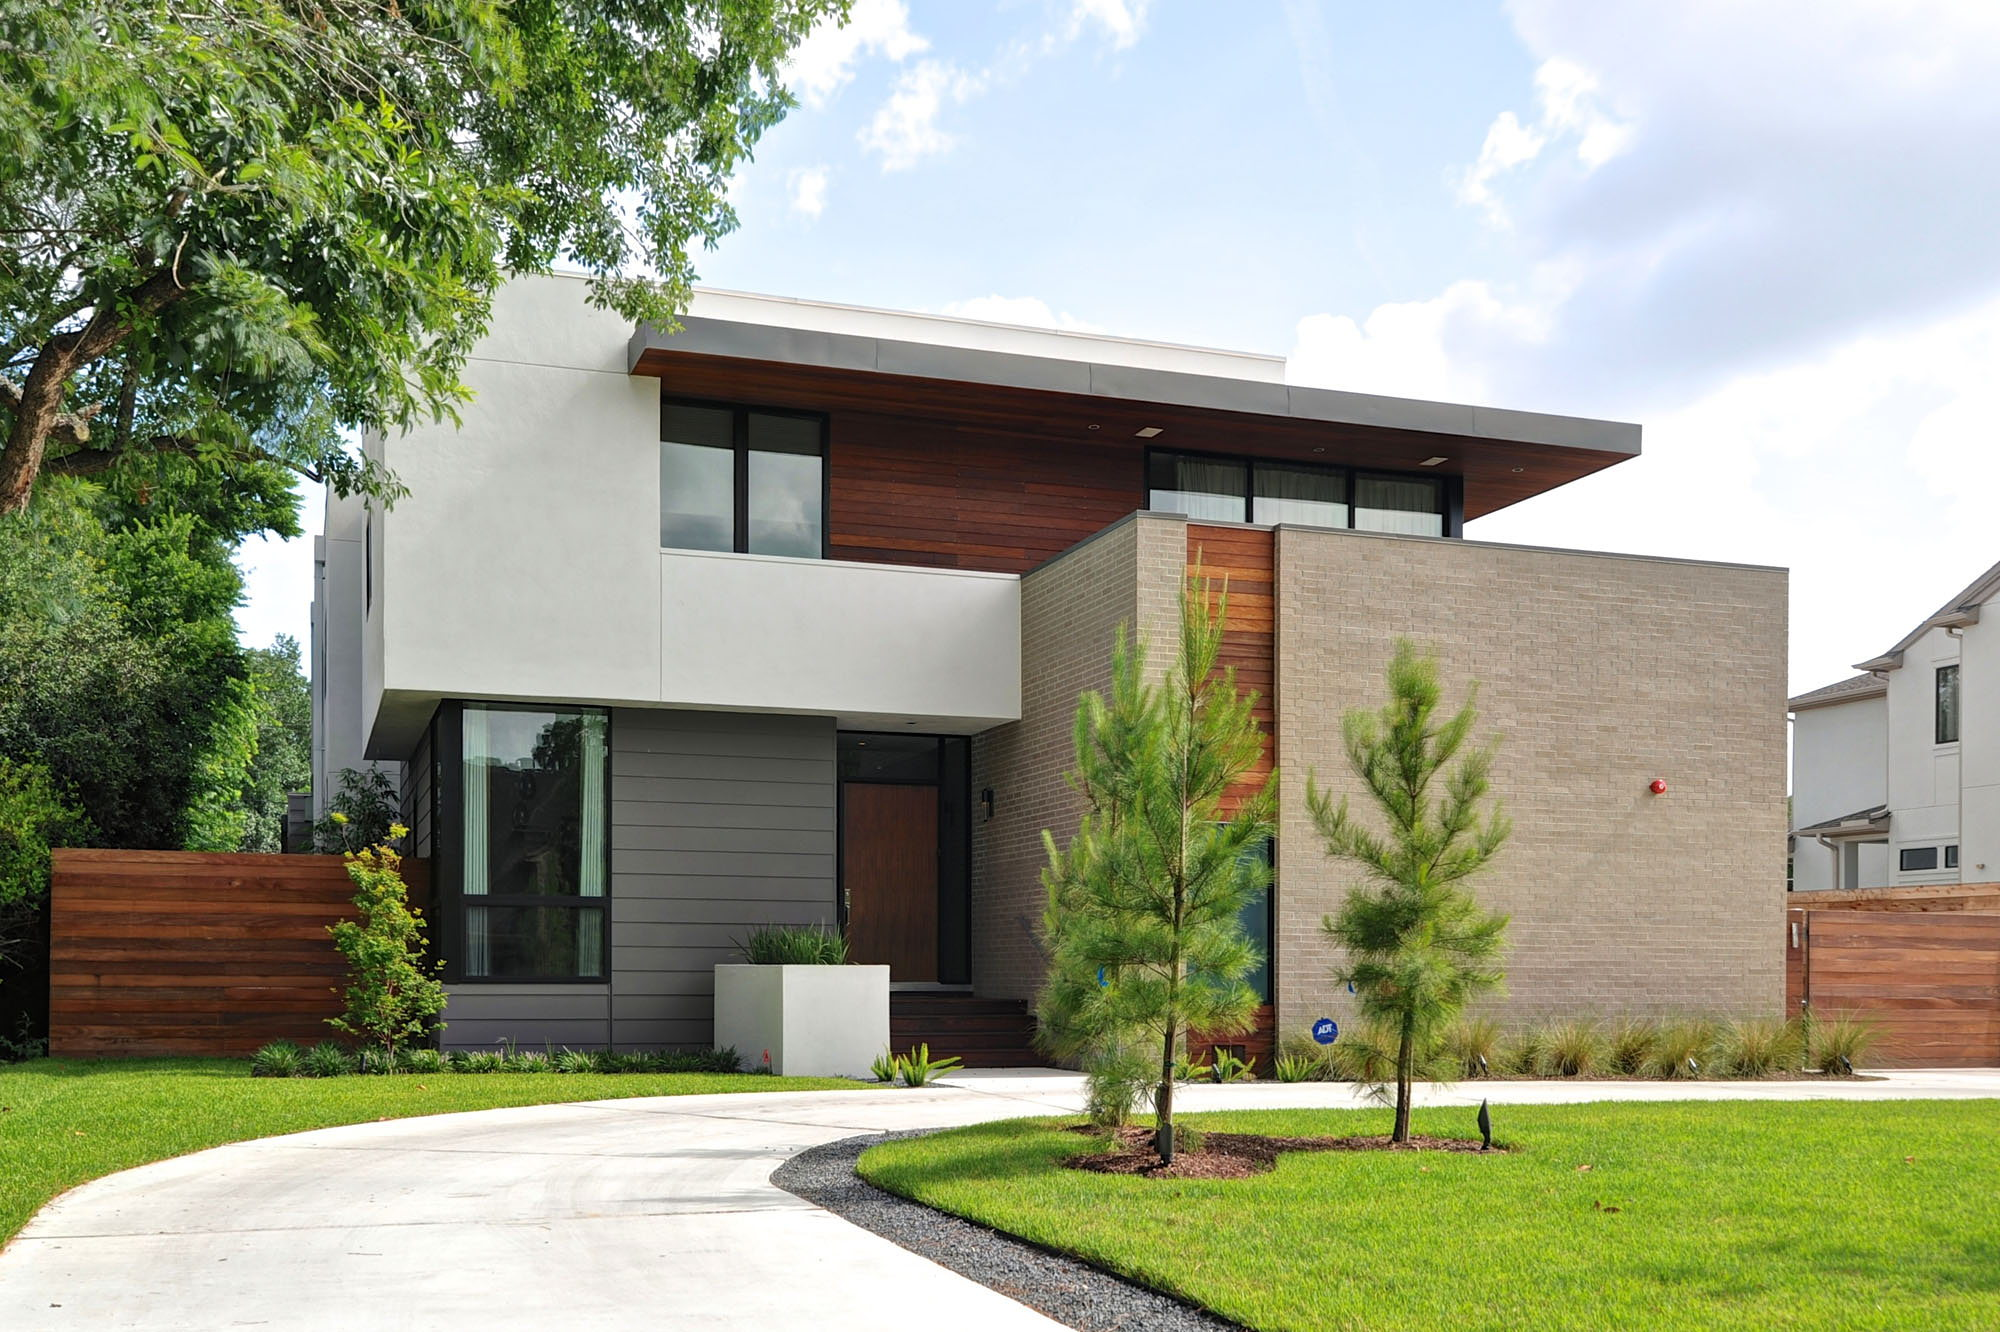 Modern house in houston from architectural firm studiomet for Architectural plans for homes